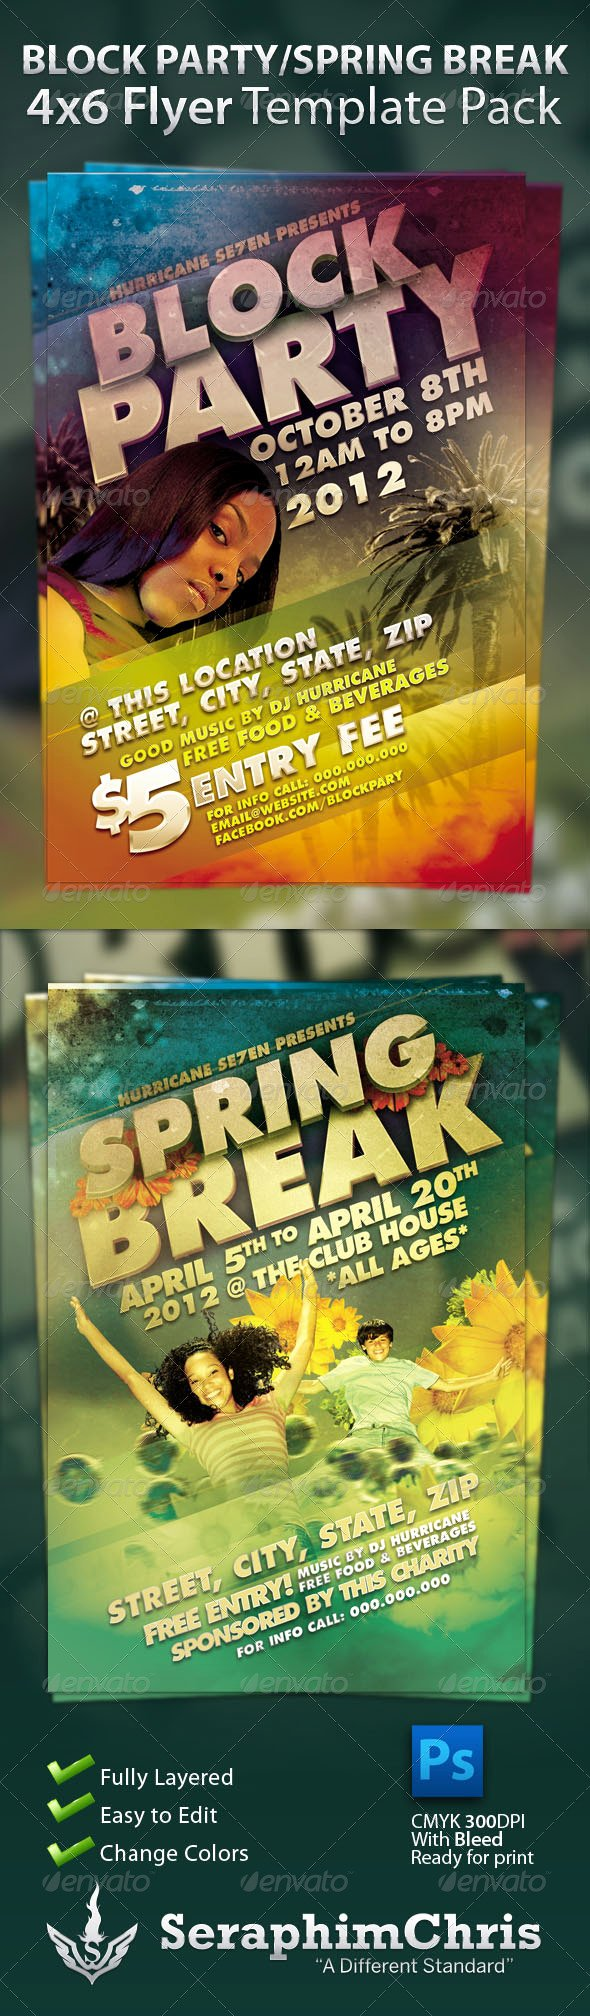 Block Party Flyer Templates Free Fresh Block Party and Spring Break Flyer Template Pack by Seraphimchris